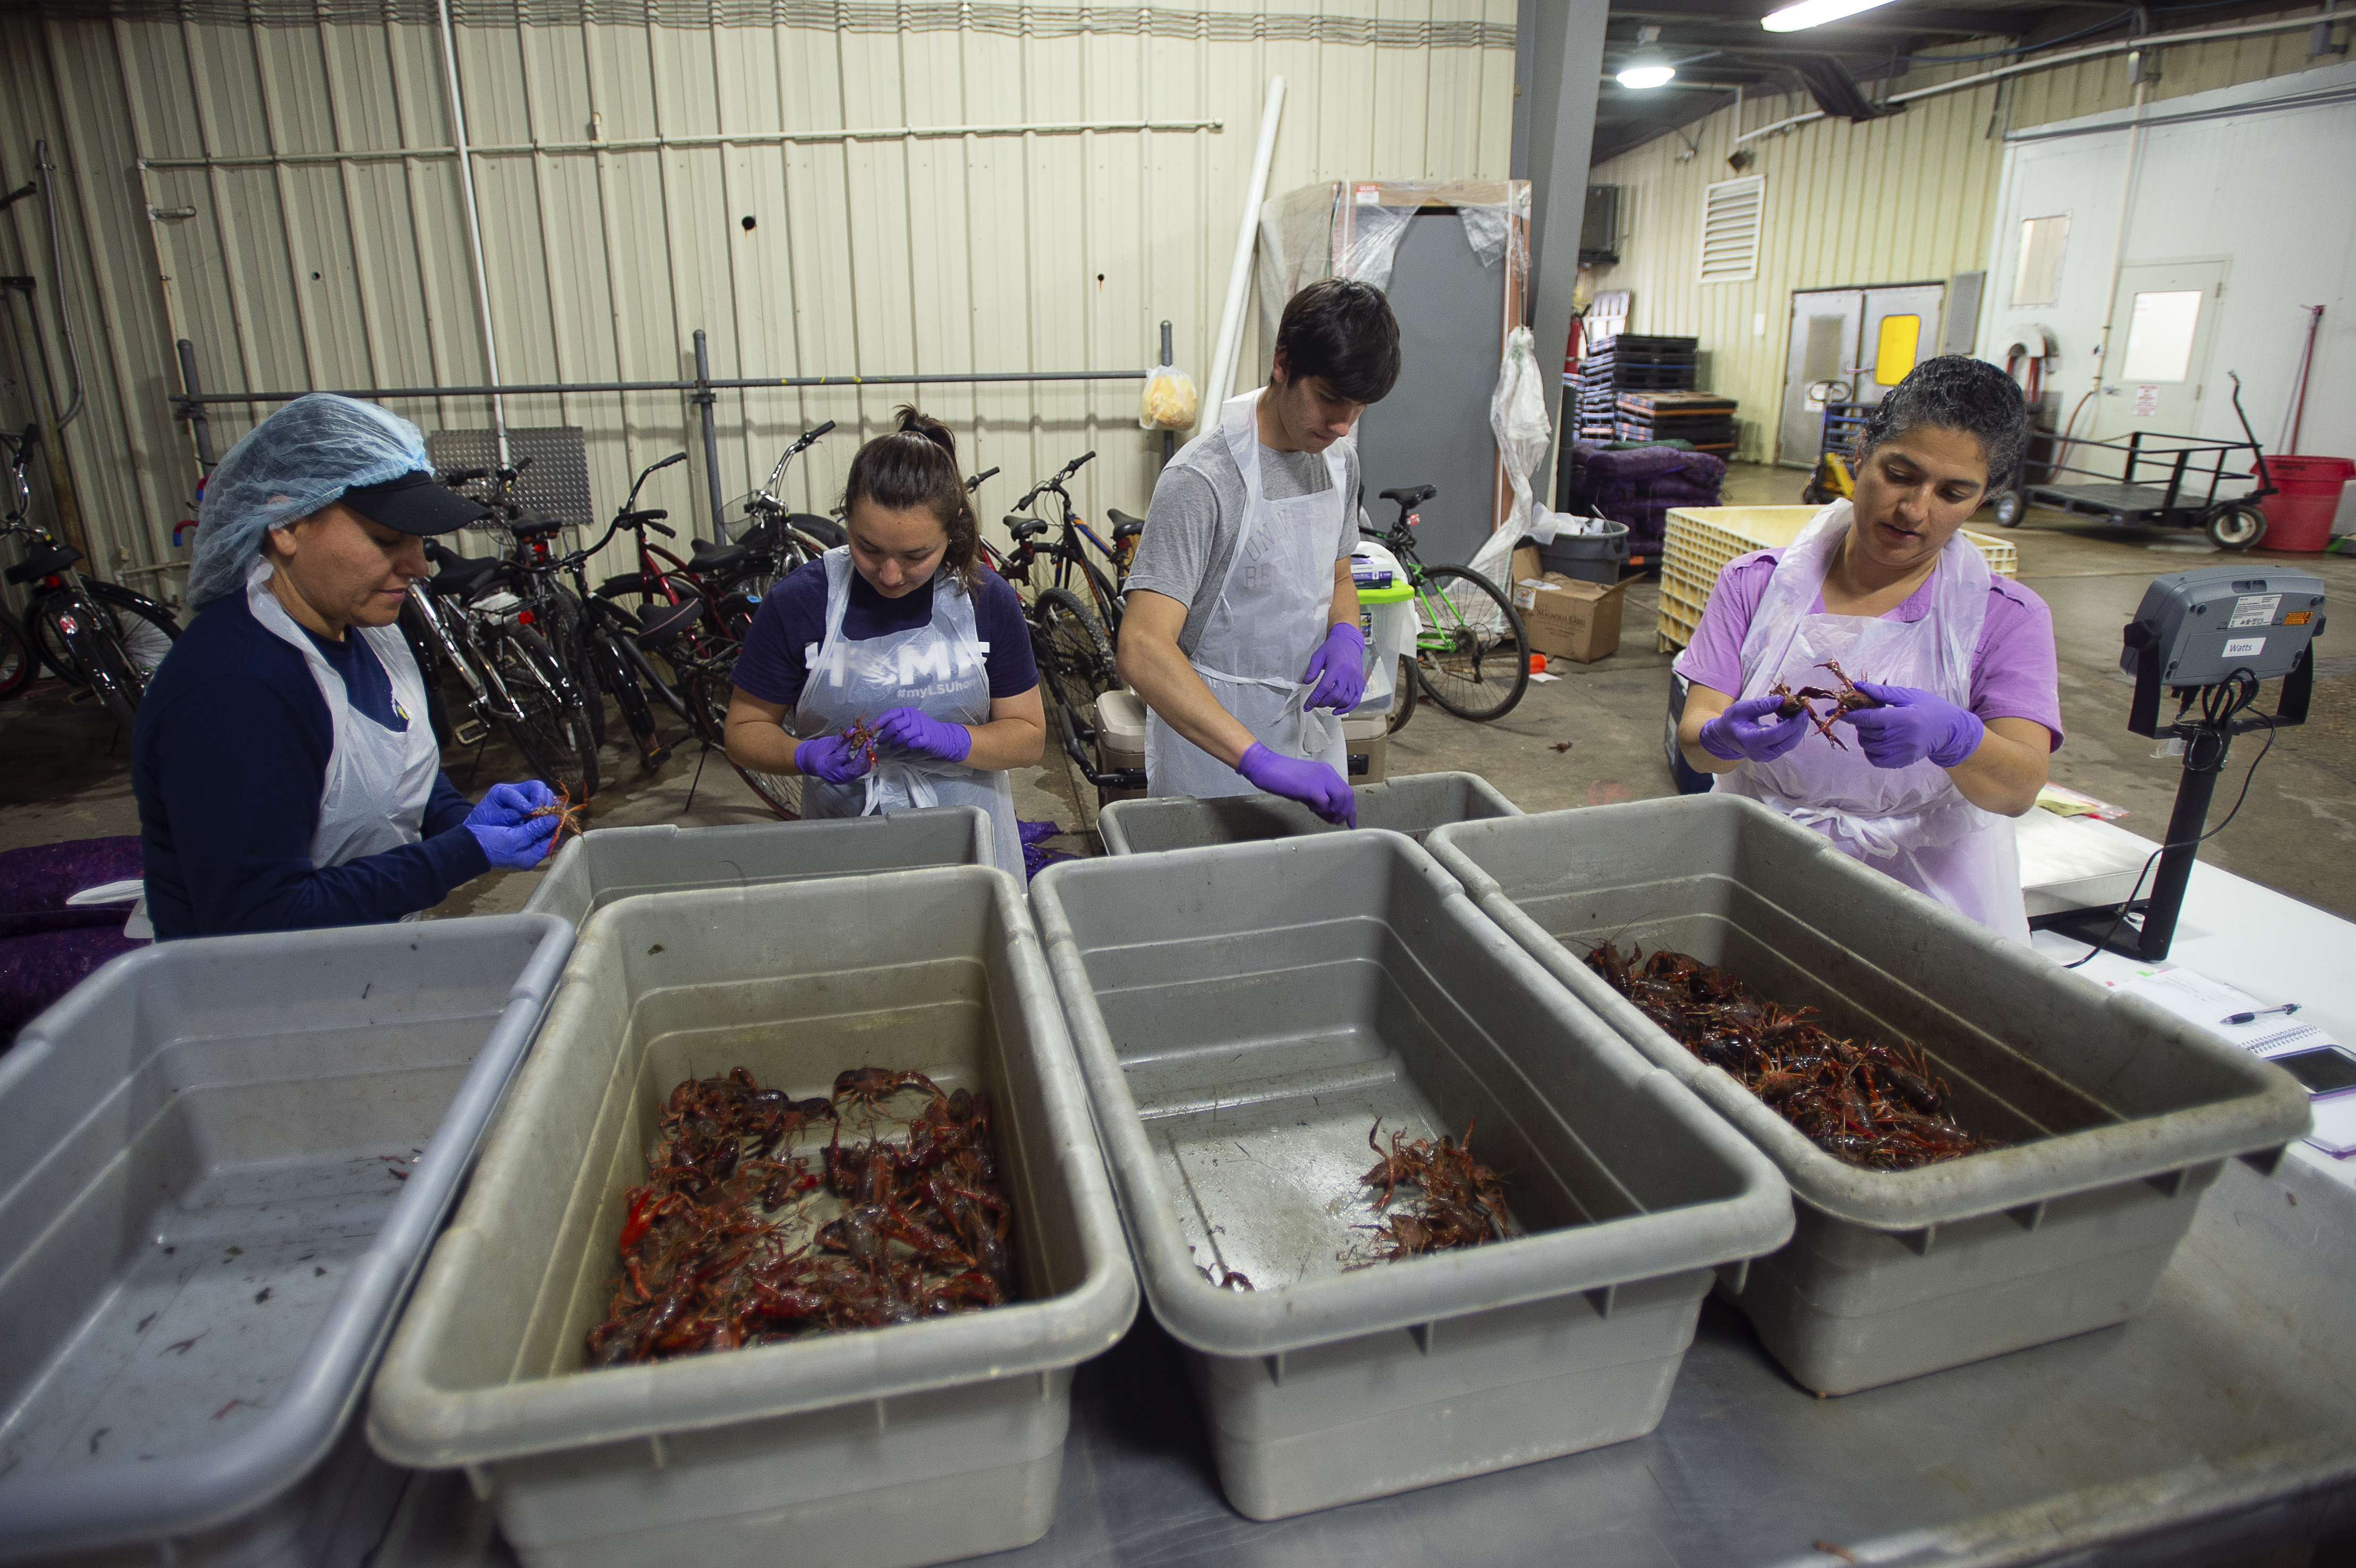 People looking at bins of crawfish